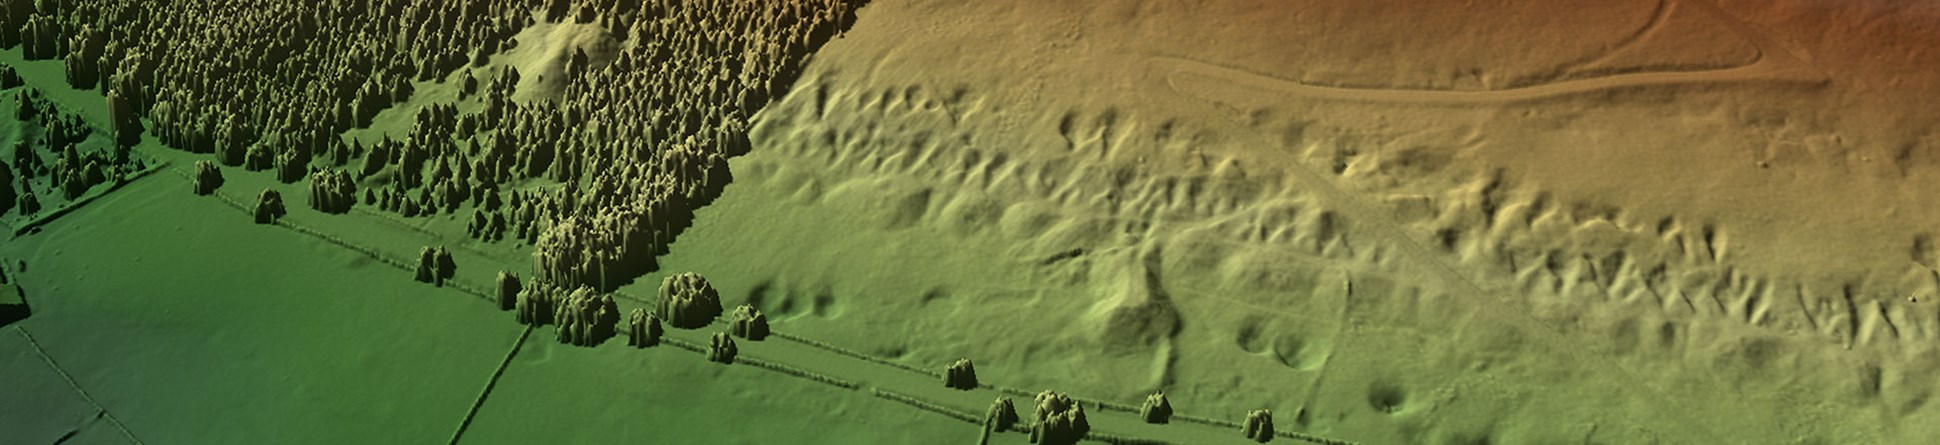 Colour image showing a stylised ground surface with trees to left and disturbed ground with mounds and pits to right